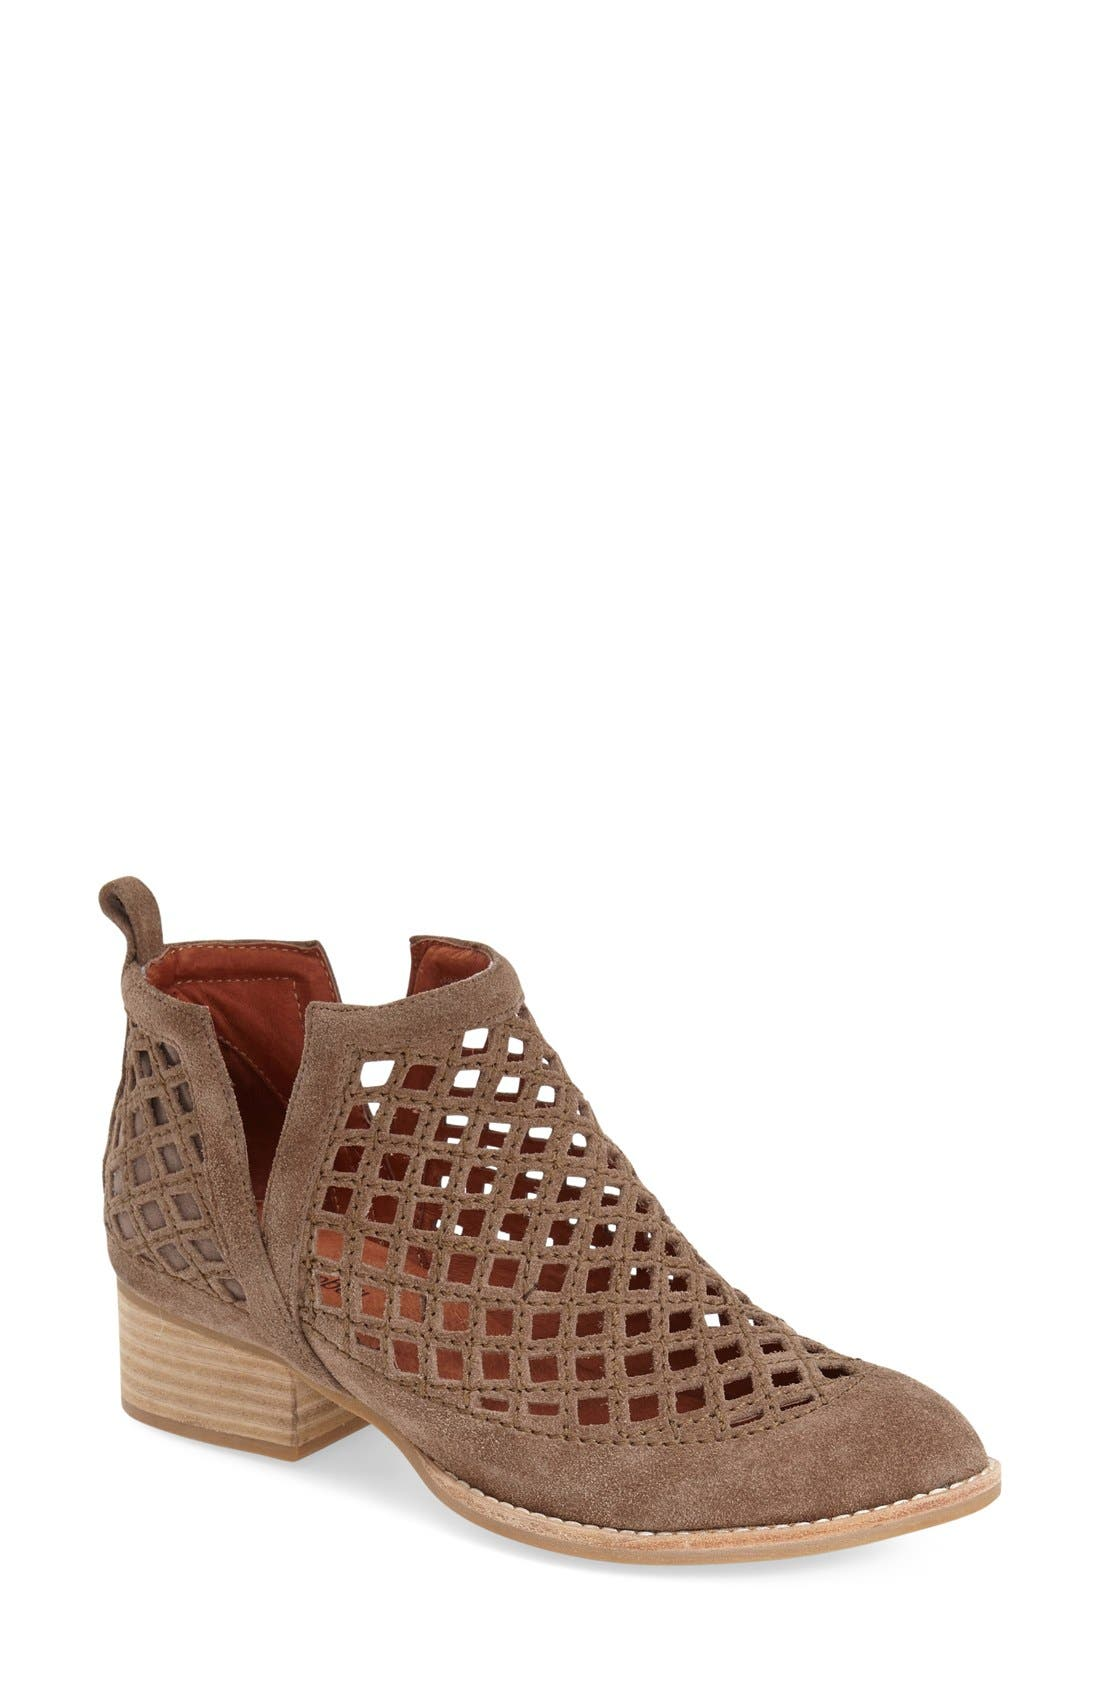 JEFFREY CAMPBELL Taggart Ankle Boot